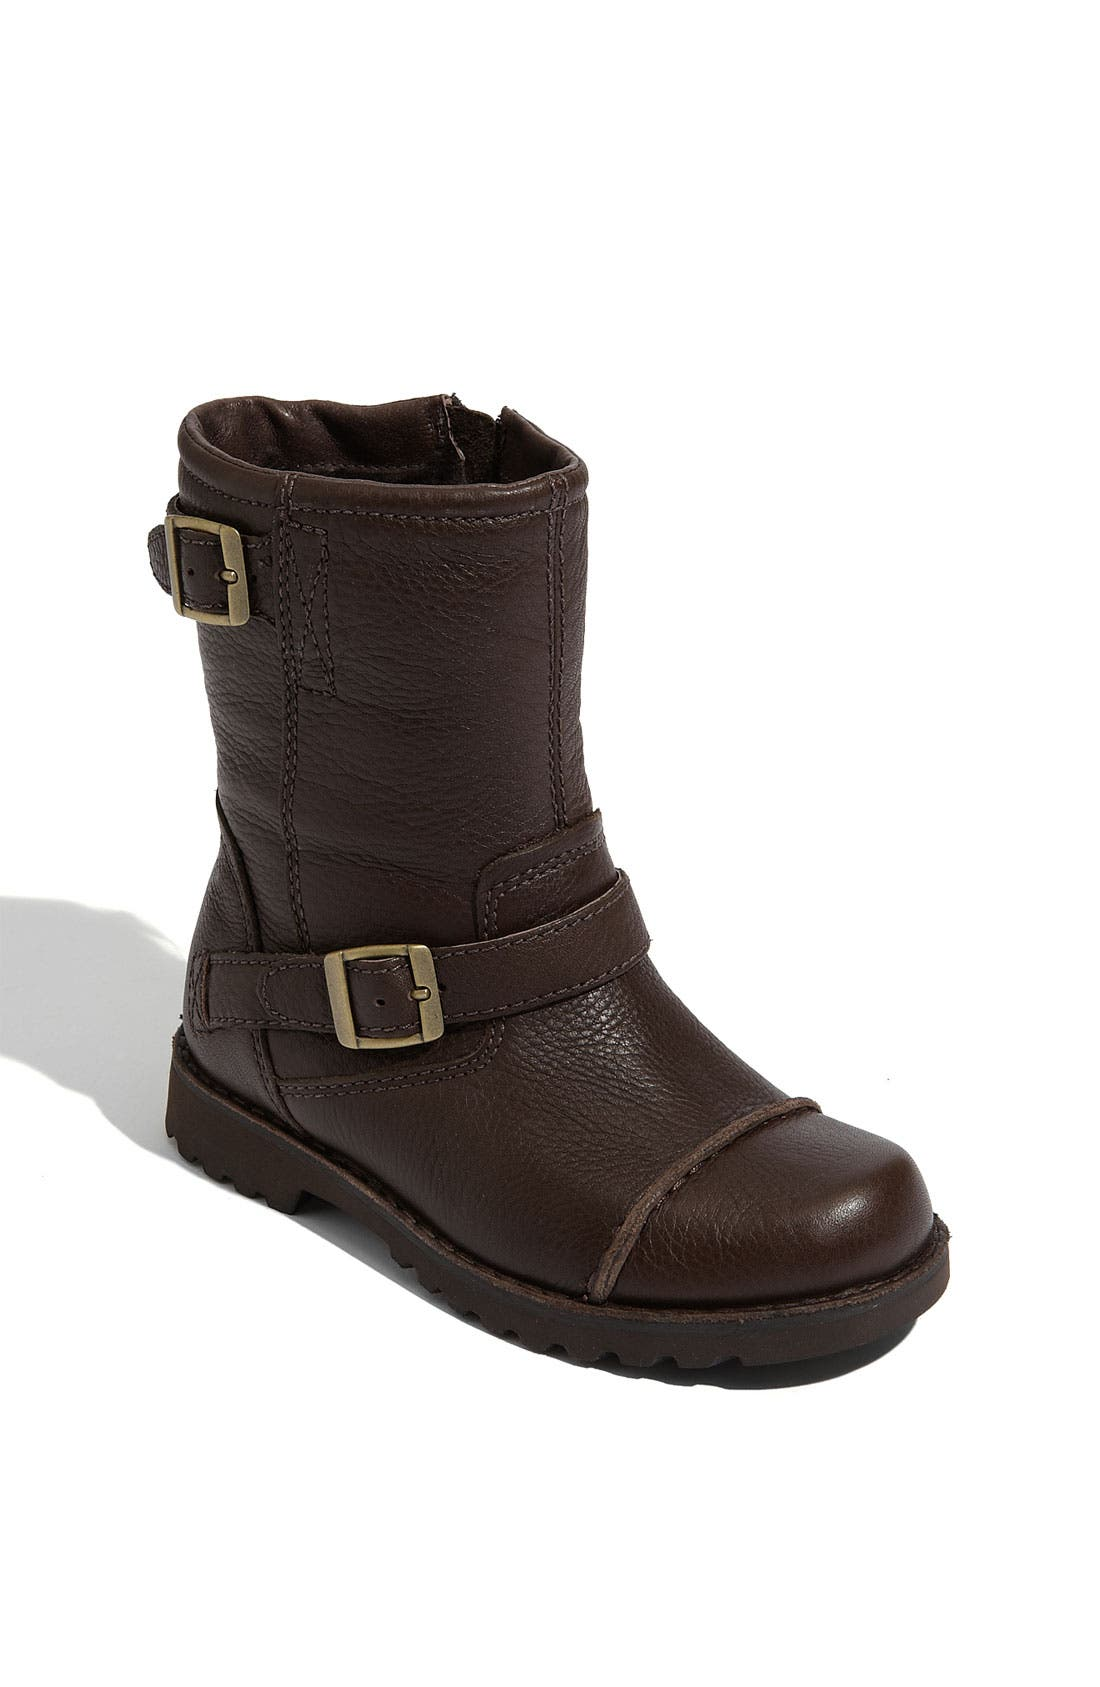 Alternate Image 1 Selected - UGG® Australia 'Cowen' Boot (Toddler, Little Kid & Big Kid)